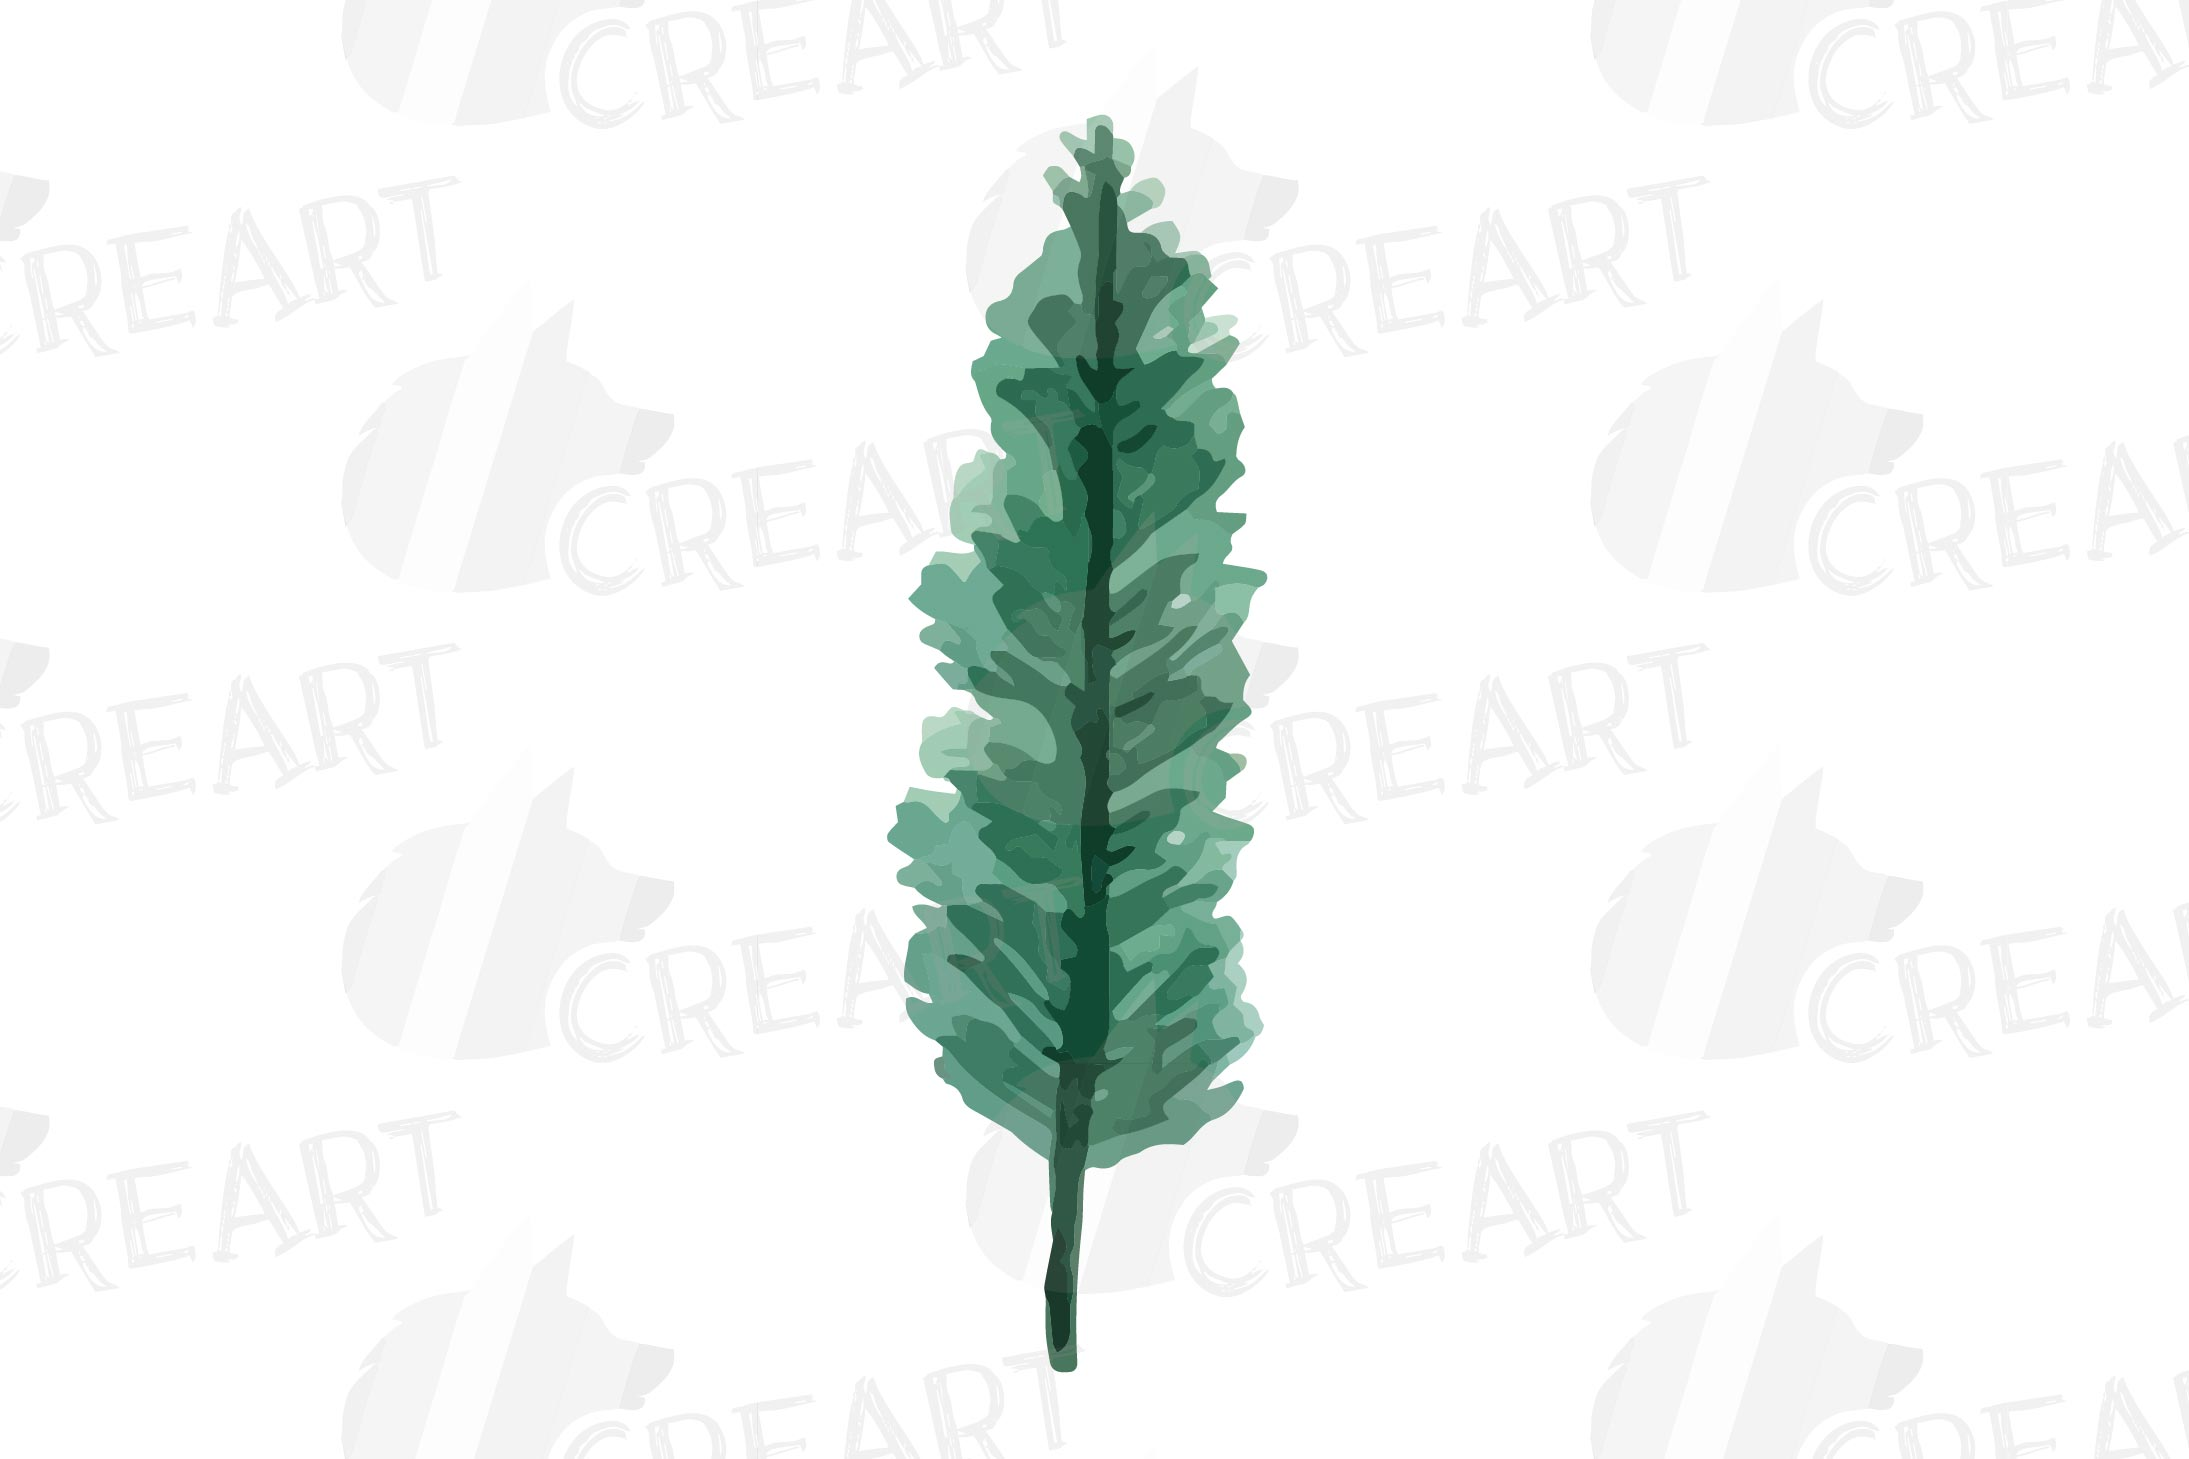 Cotton bolls and fir branch leafy autumn and winter decor example image 7